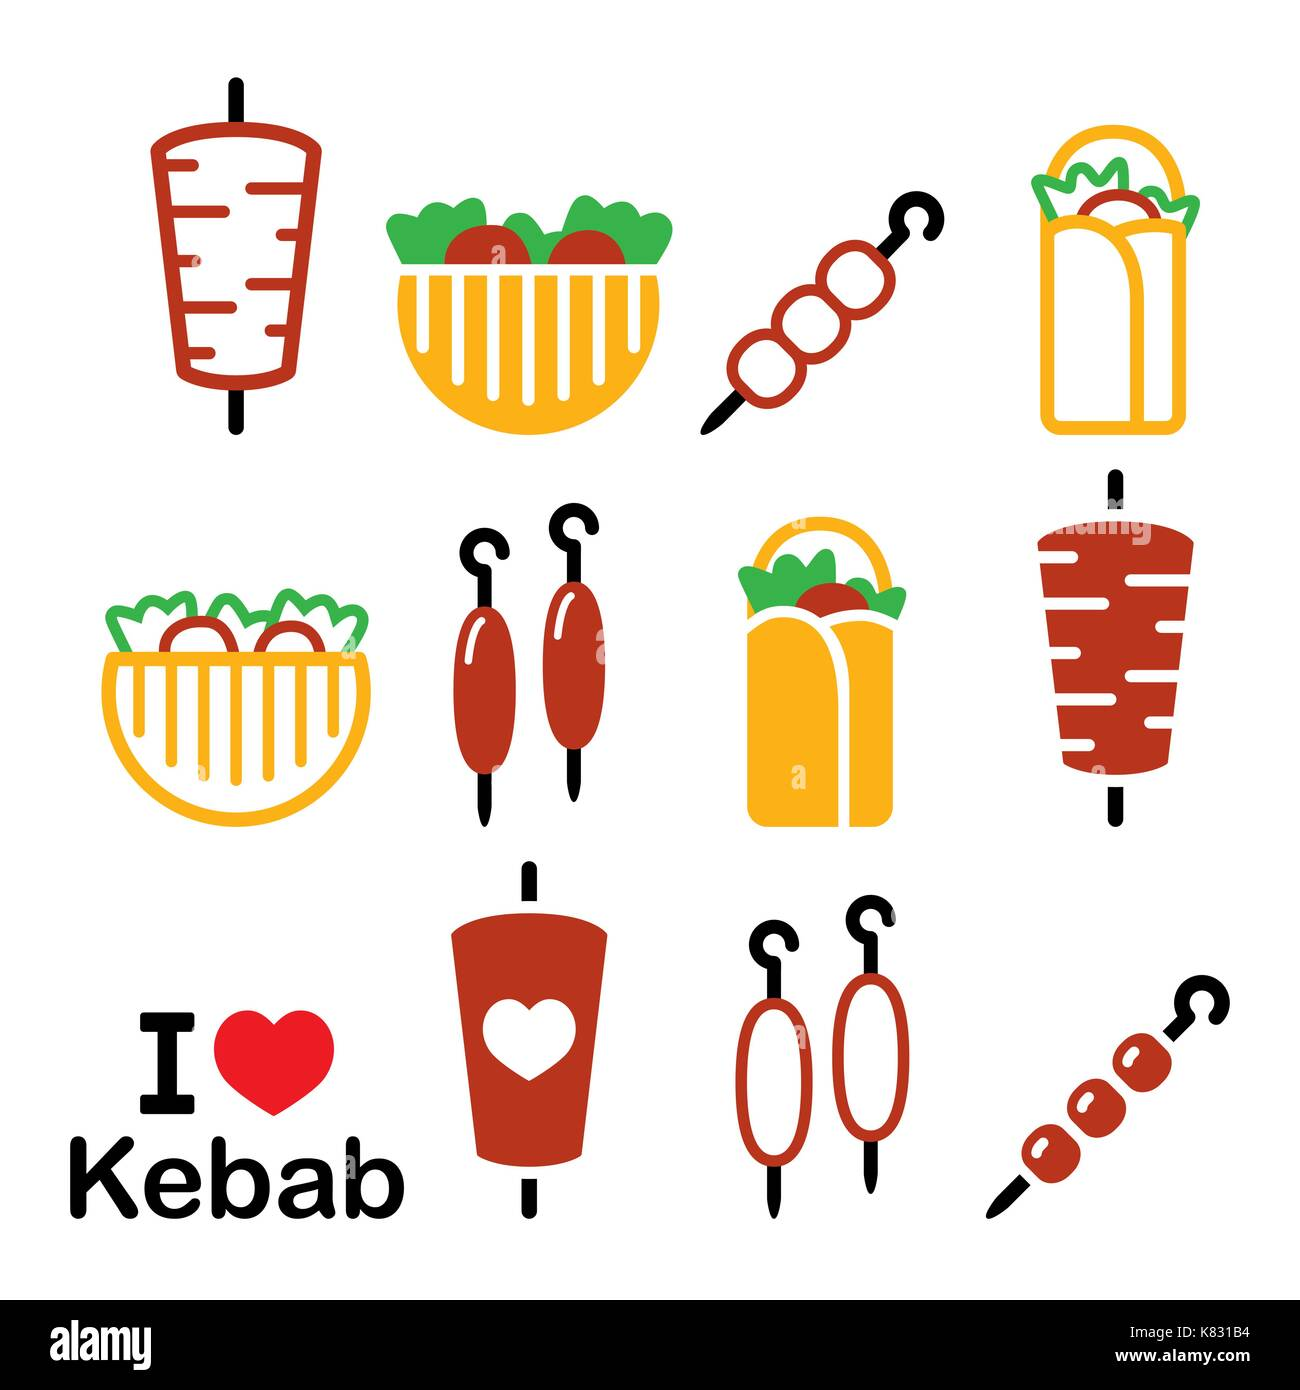 Doner kebab vector icons, kebab in wrap or pita bread, shish and adana kebab skewers design set - Stock Vector